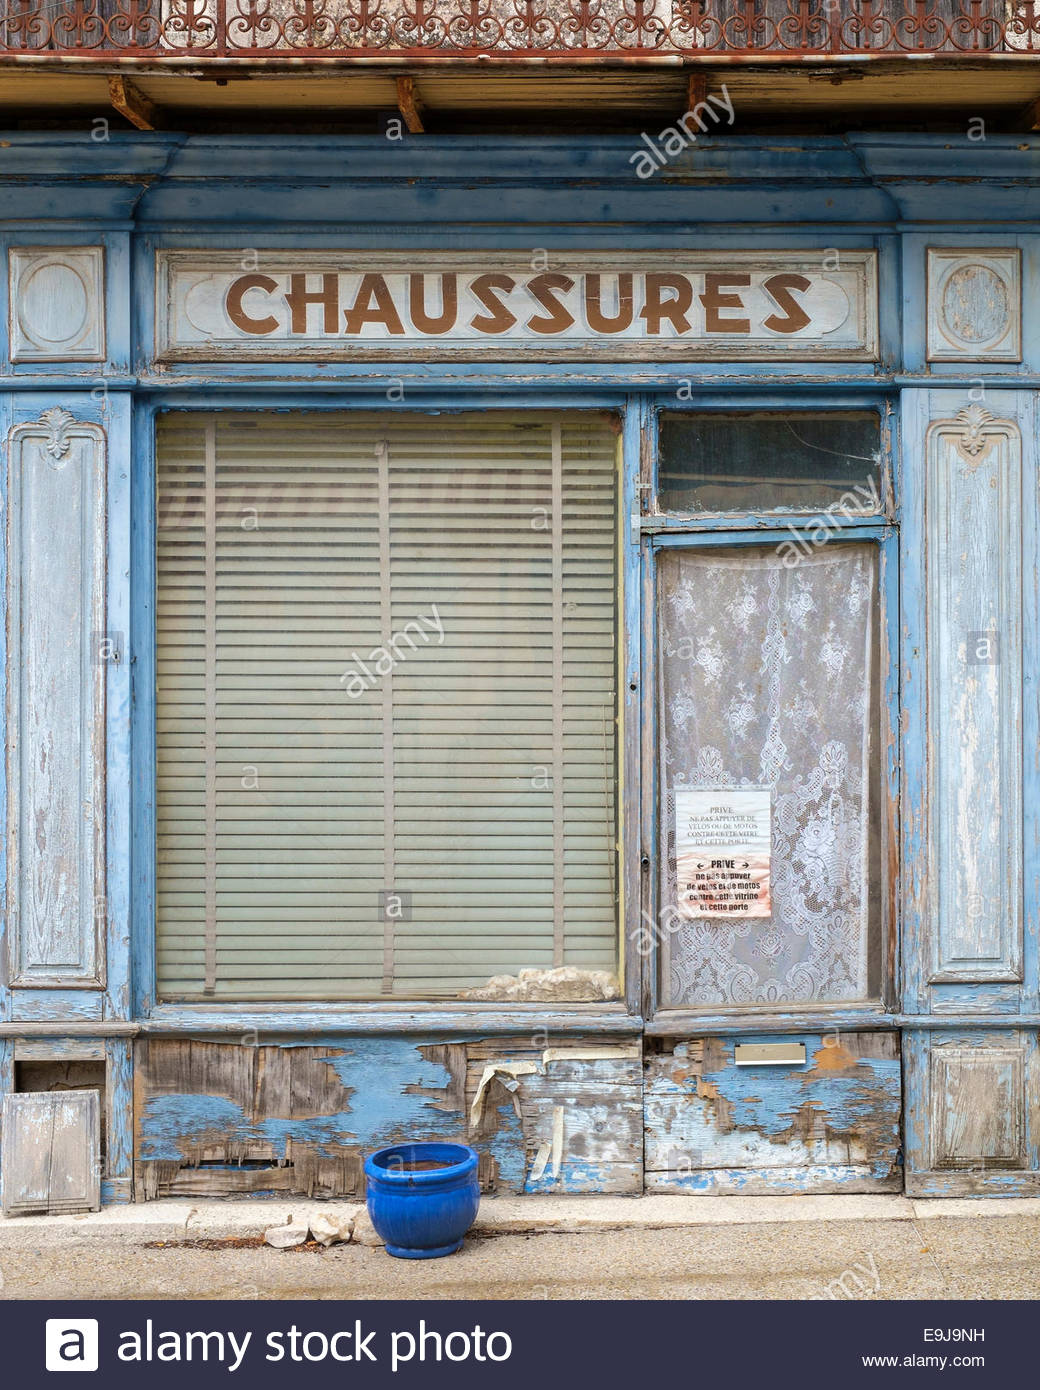 Old abandoned façade of shoe store with pained sign for 'Chaussures', Sault, Vaucluse, Provence-Alpes - Stock Image